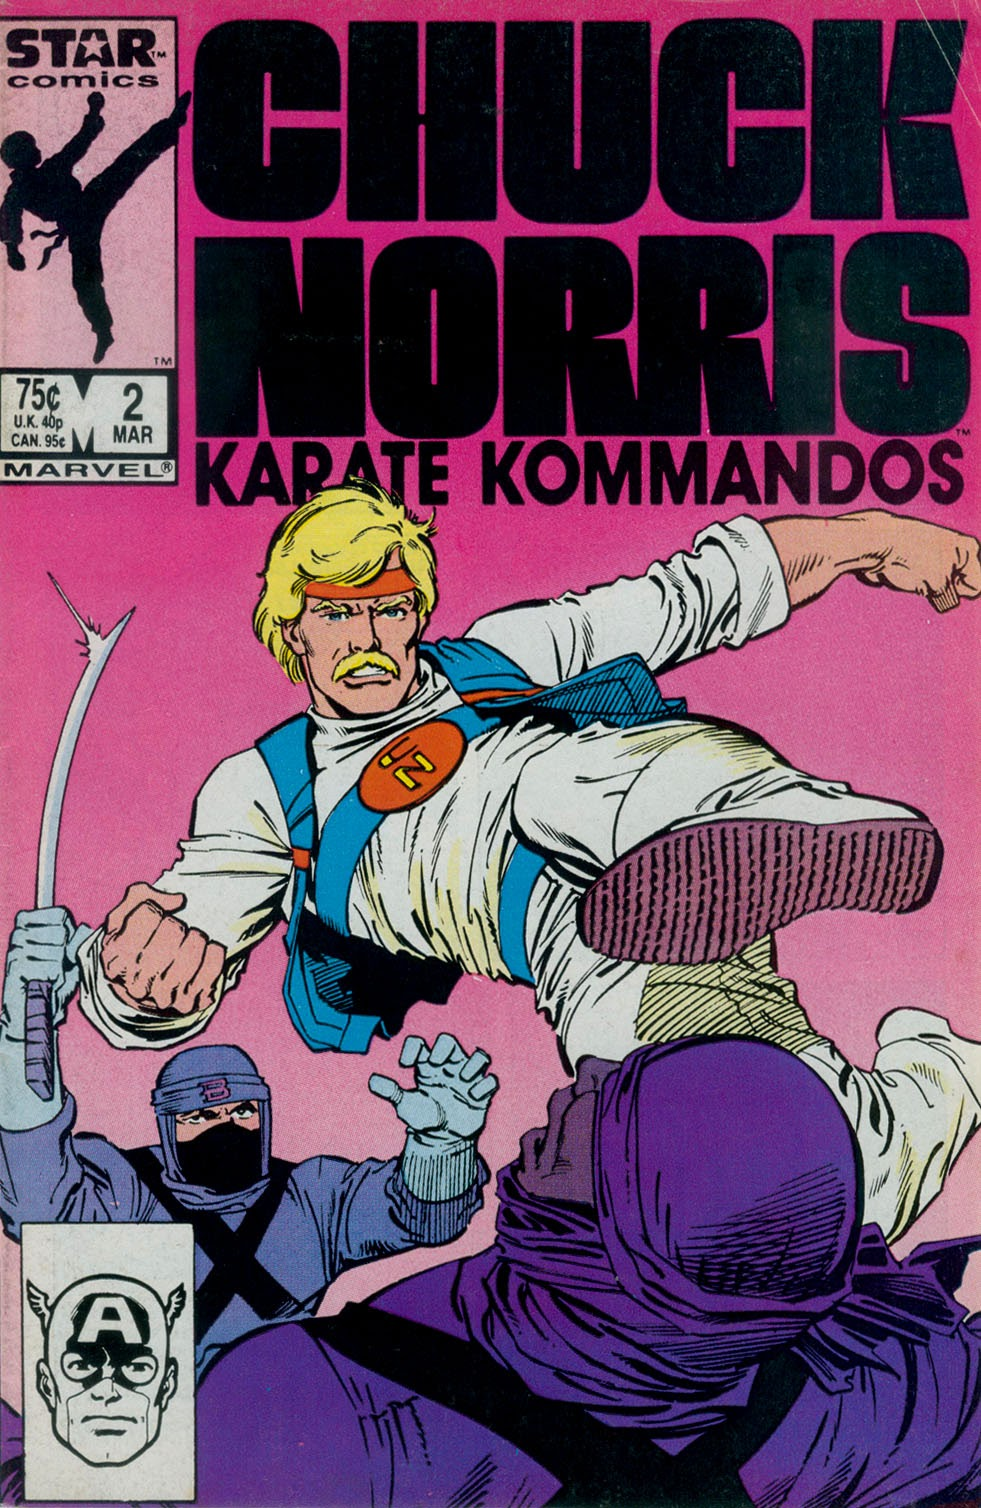 Chuck Norris and the Karate Kommandos 2 Page 1